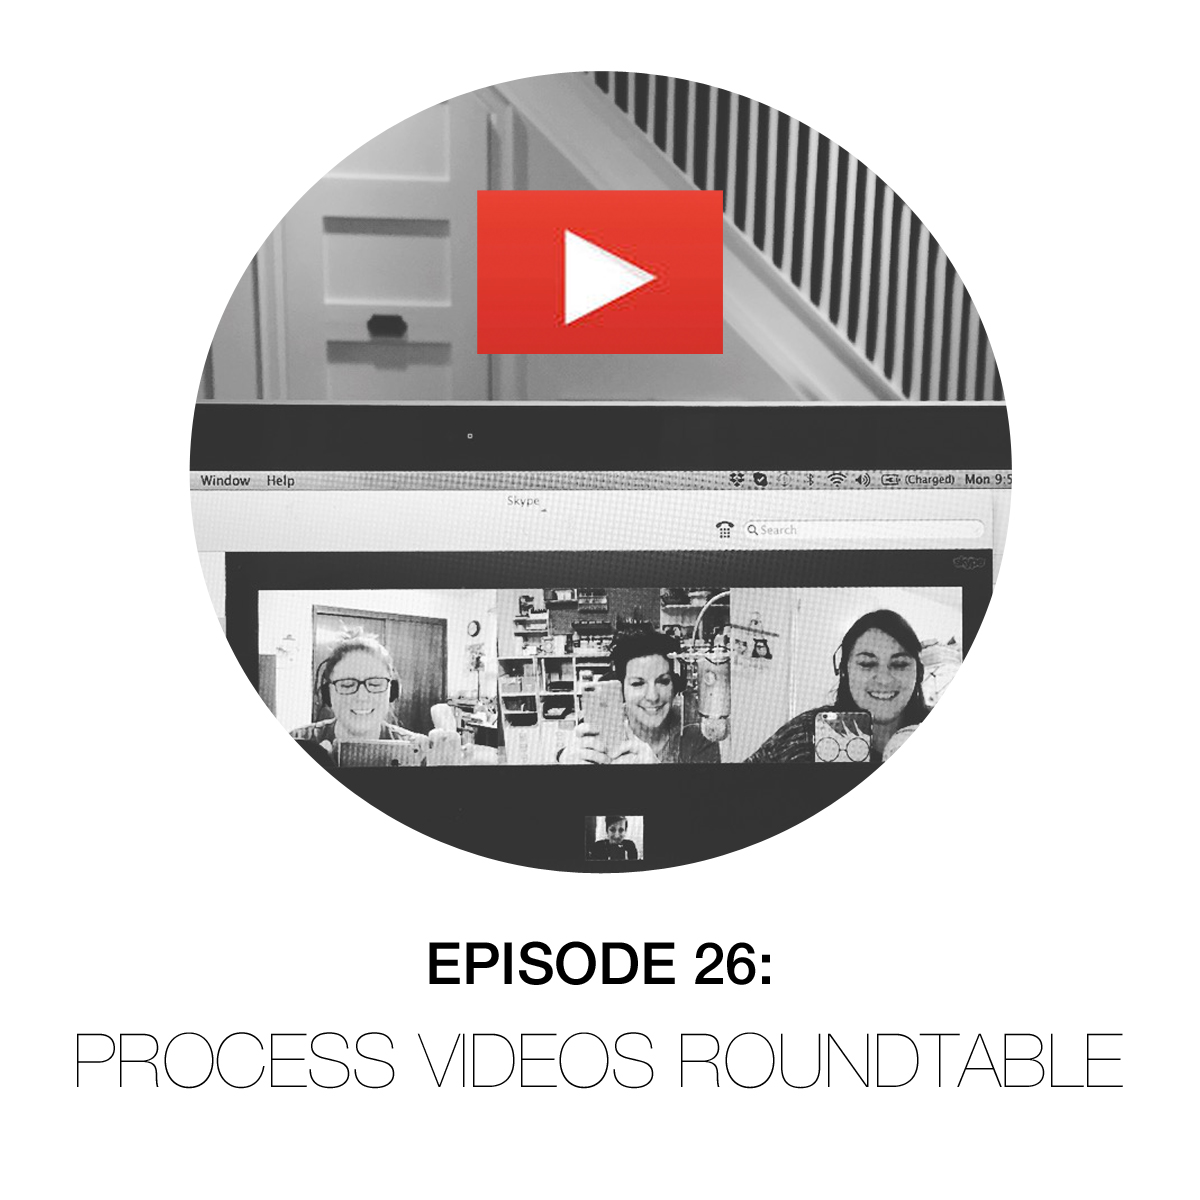 Episode 26: Process Videos Roundtable